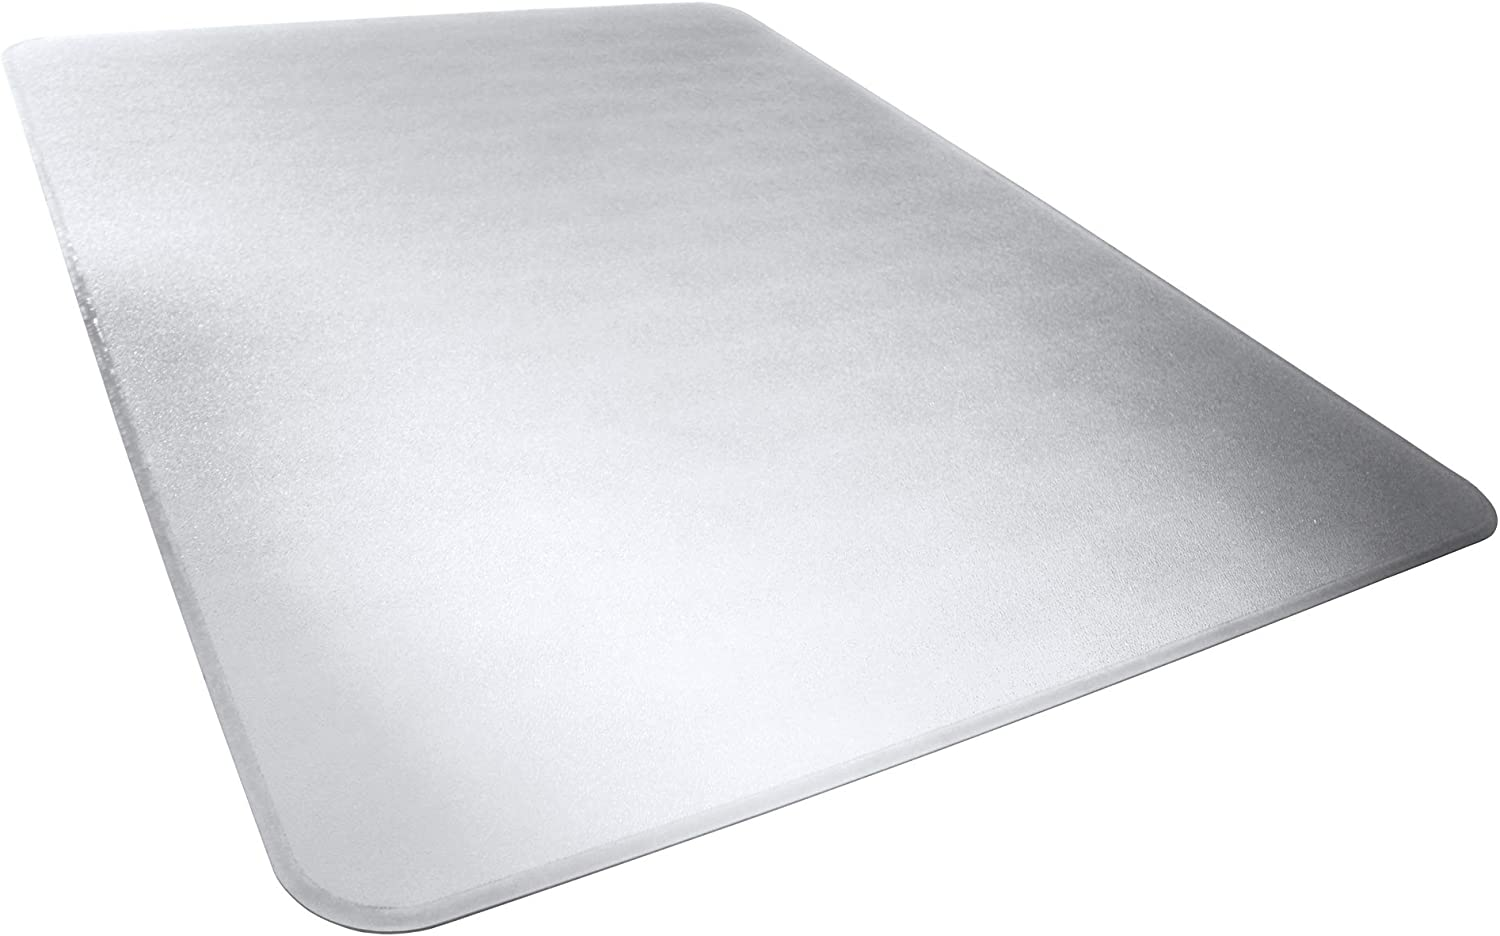 "AmazonBasics Polycarbonate Heavy Duty Chair Mat for Carpets & Hard Floors - 46"" x 60"""